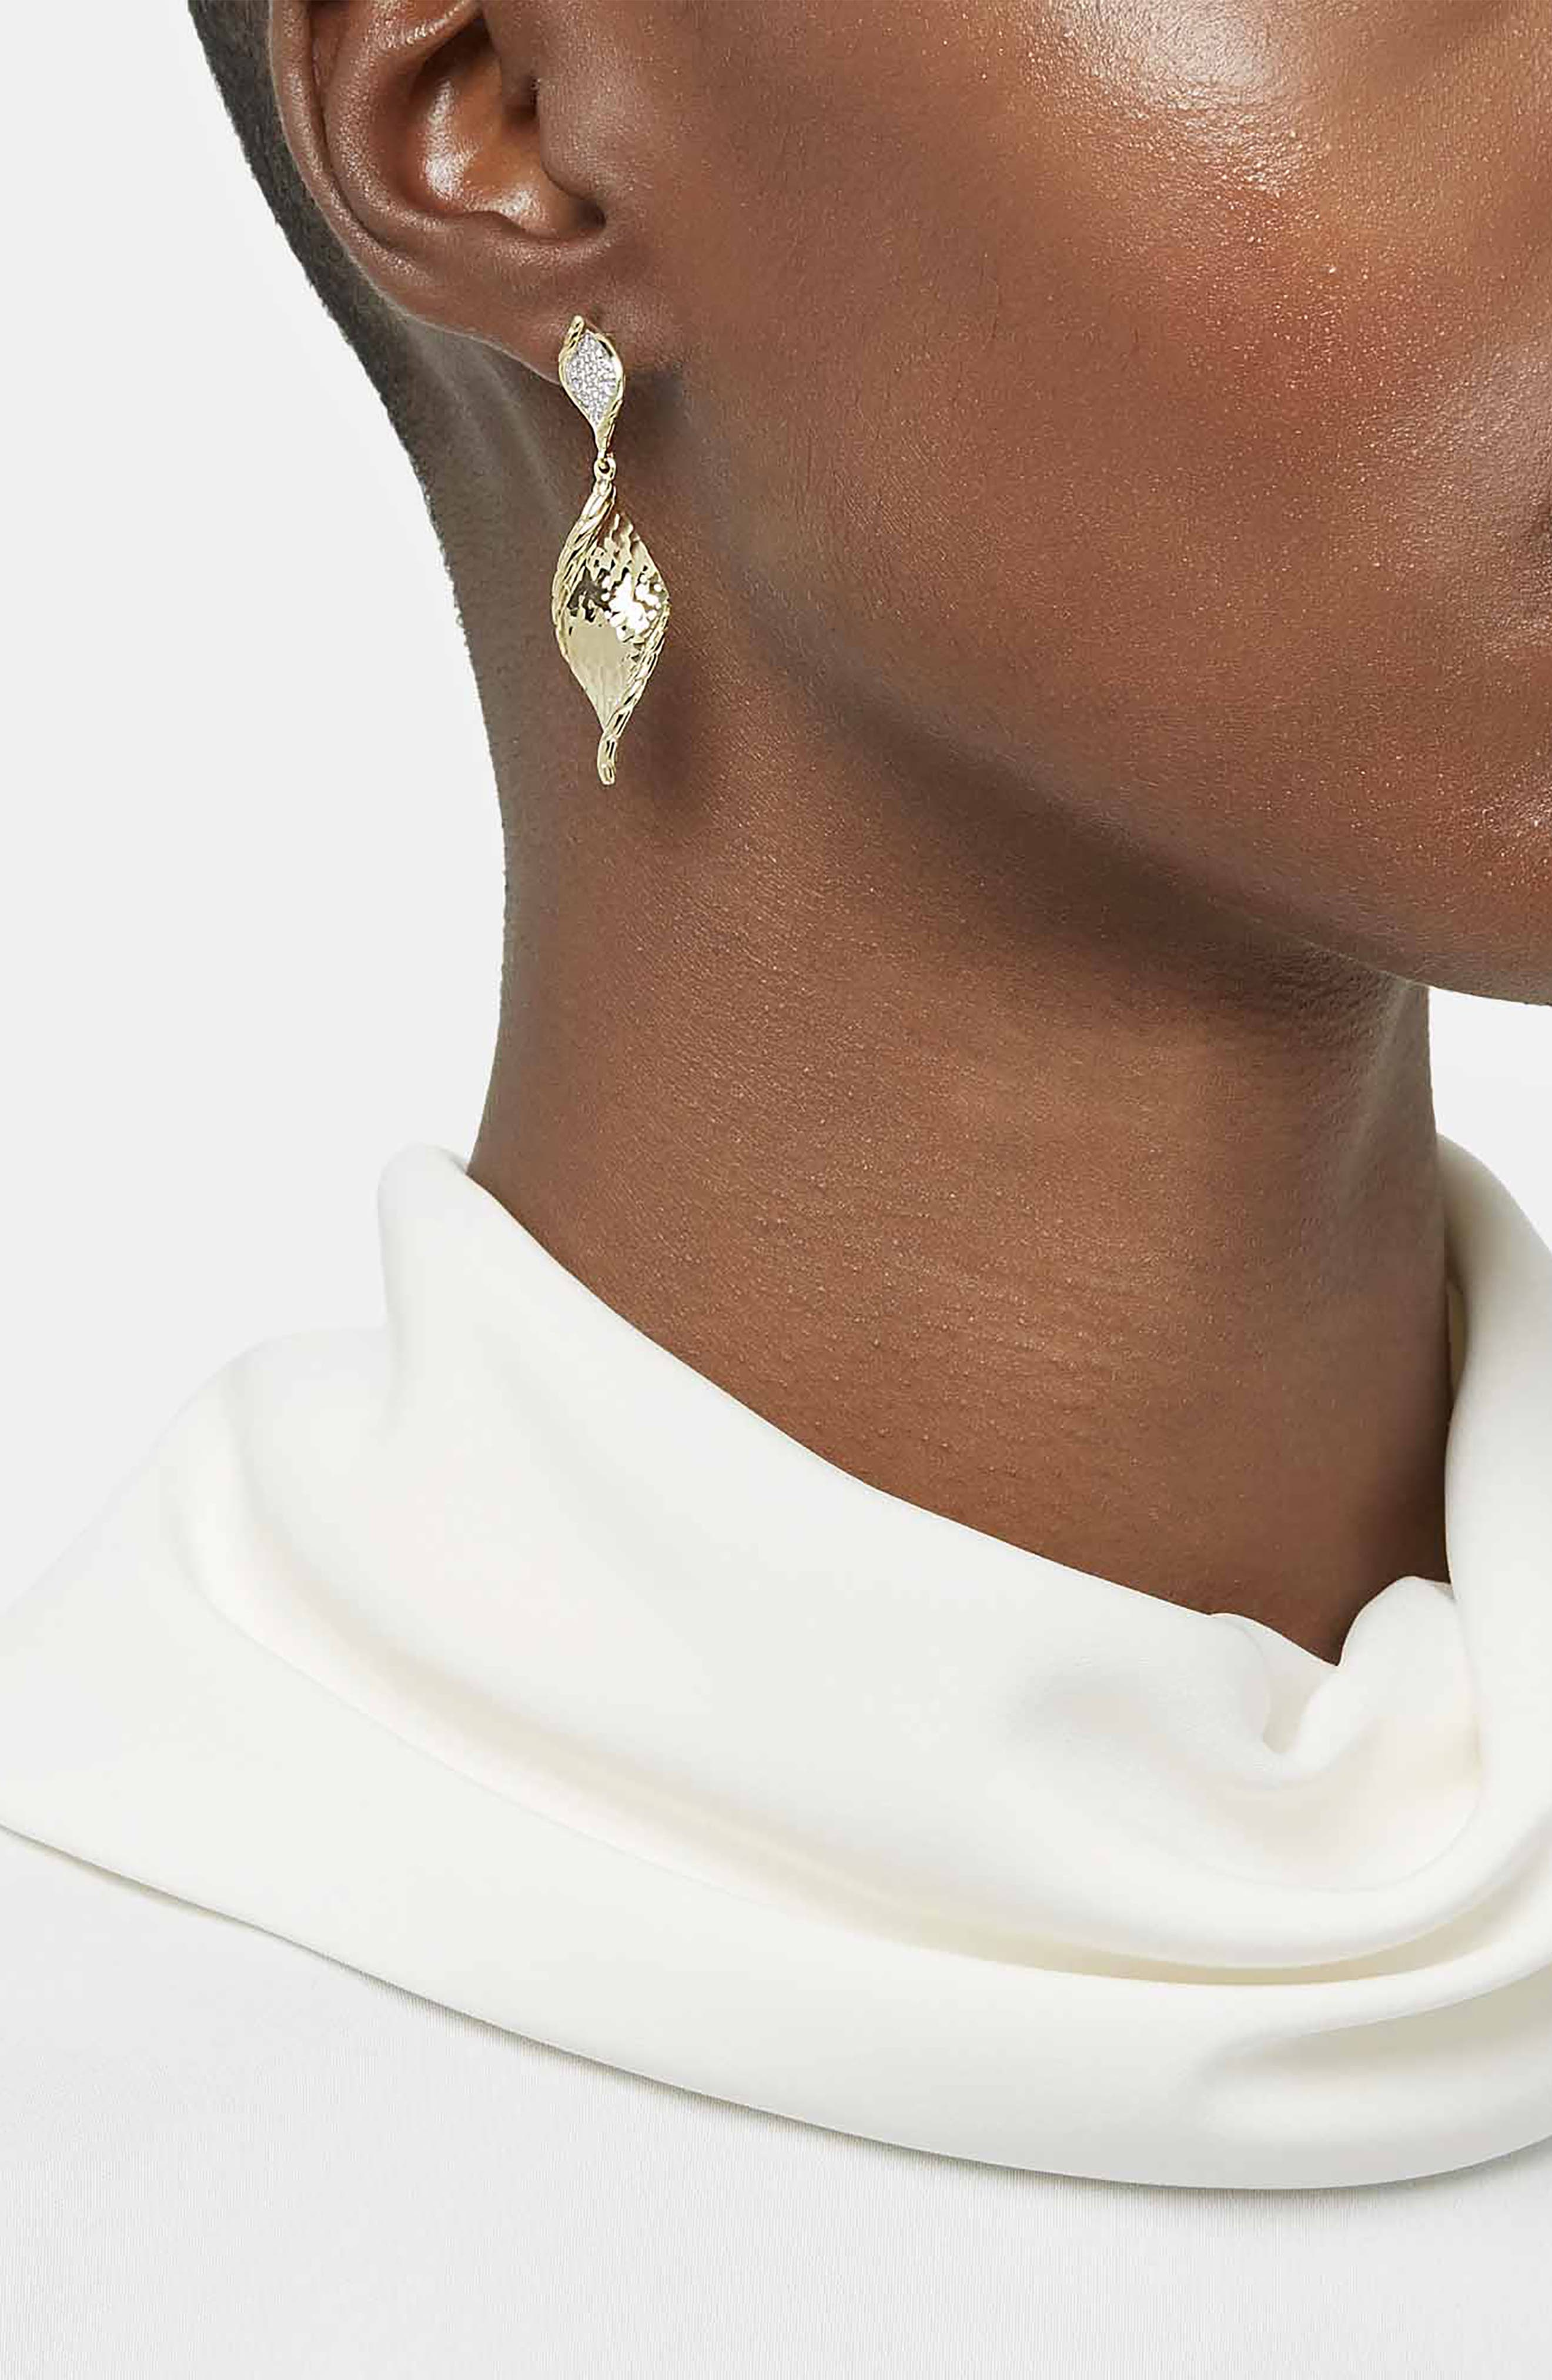 Classic Chain Hammered Gold Drop Earrings with Diamonds,                             Alternate thumbnail 2, color,                             GOLD/ DIAMOND